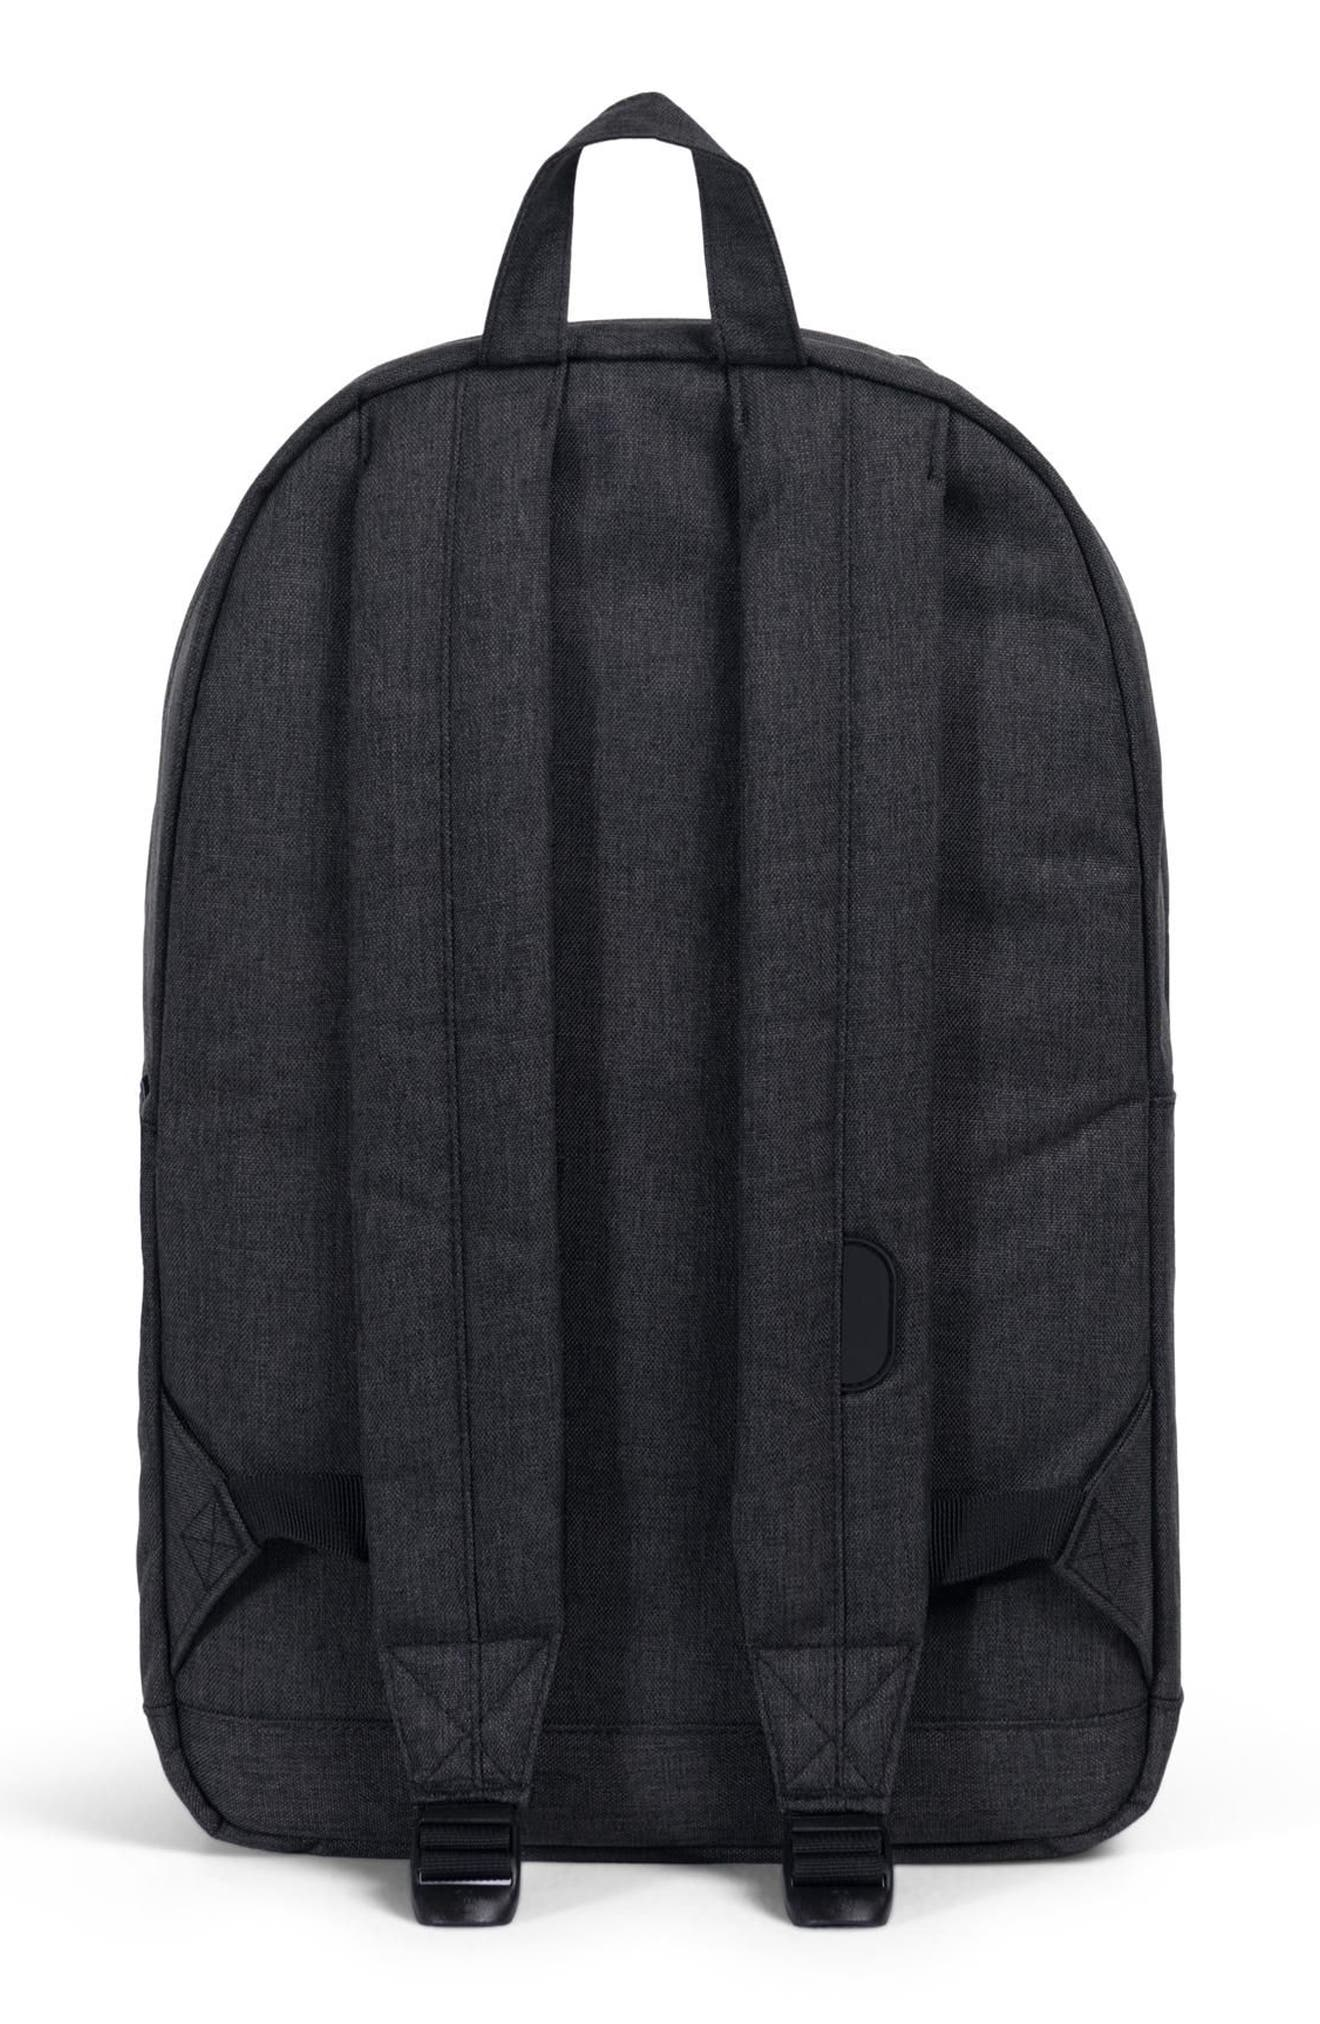 'Pop Quiz' Backpack,                             Alternate thumbnail 2, color,                             BLACK CROSSHATCH/ BLACK RUBBER